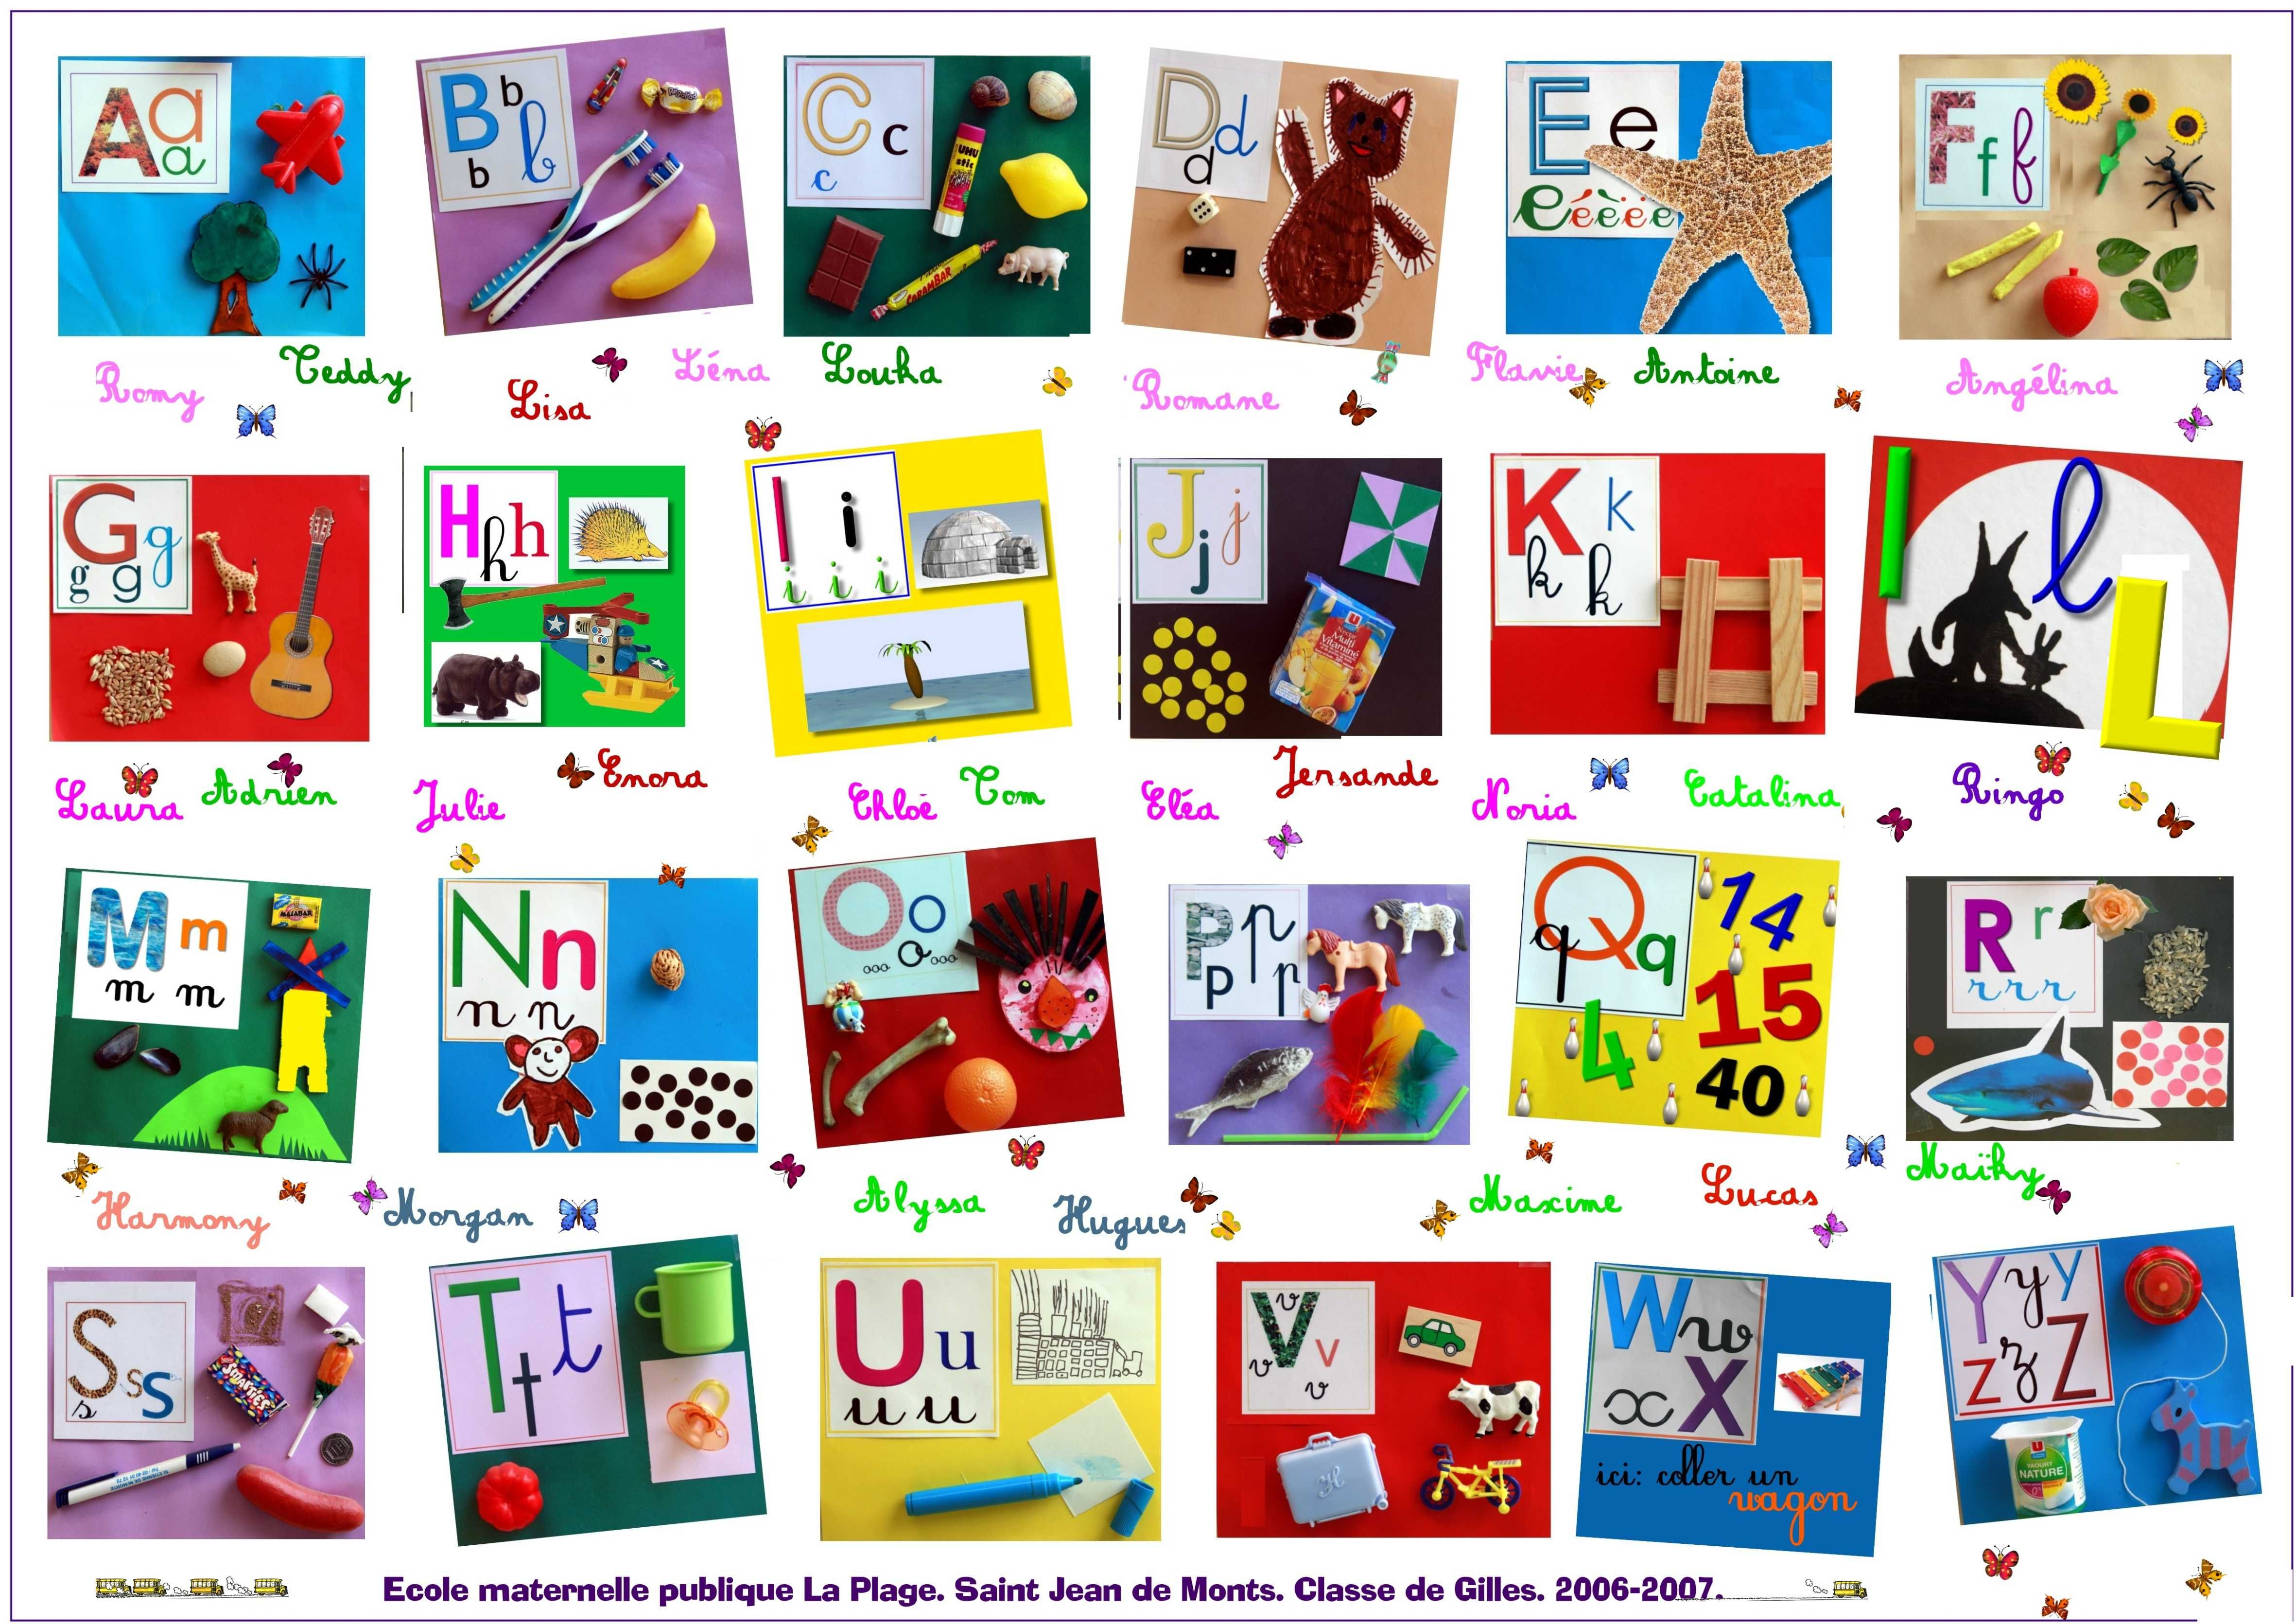 Collaged Alphabet In French Which Is Why The Images Don T Match The Sound Lettre A Alphabet Lettres Alphabet